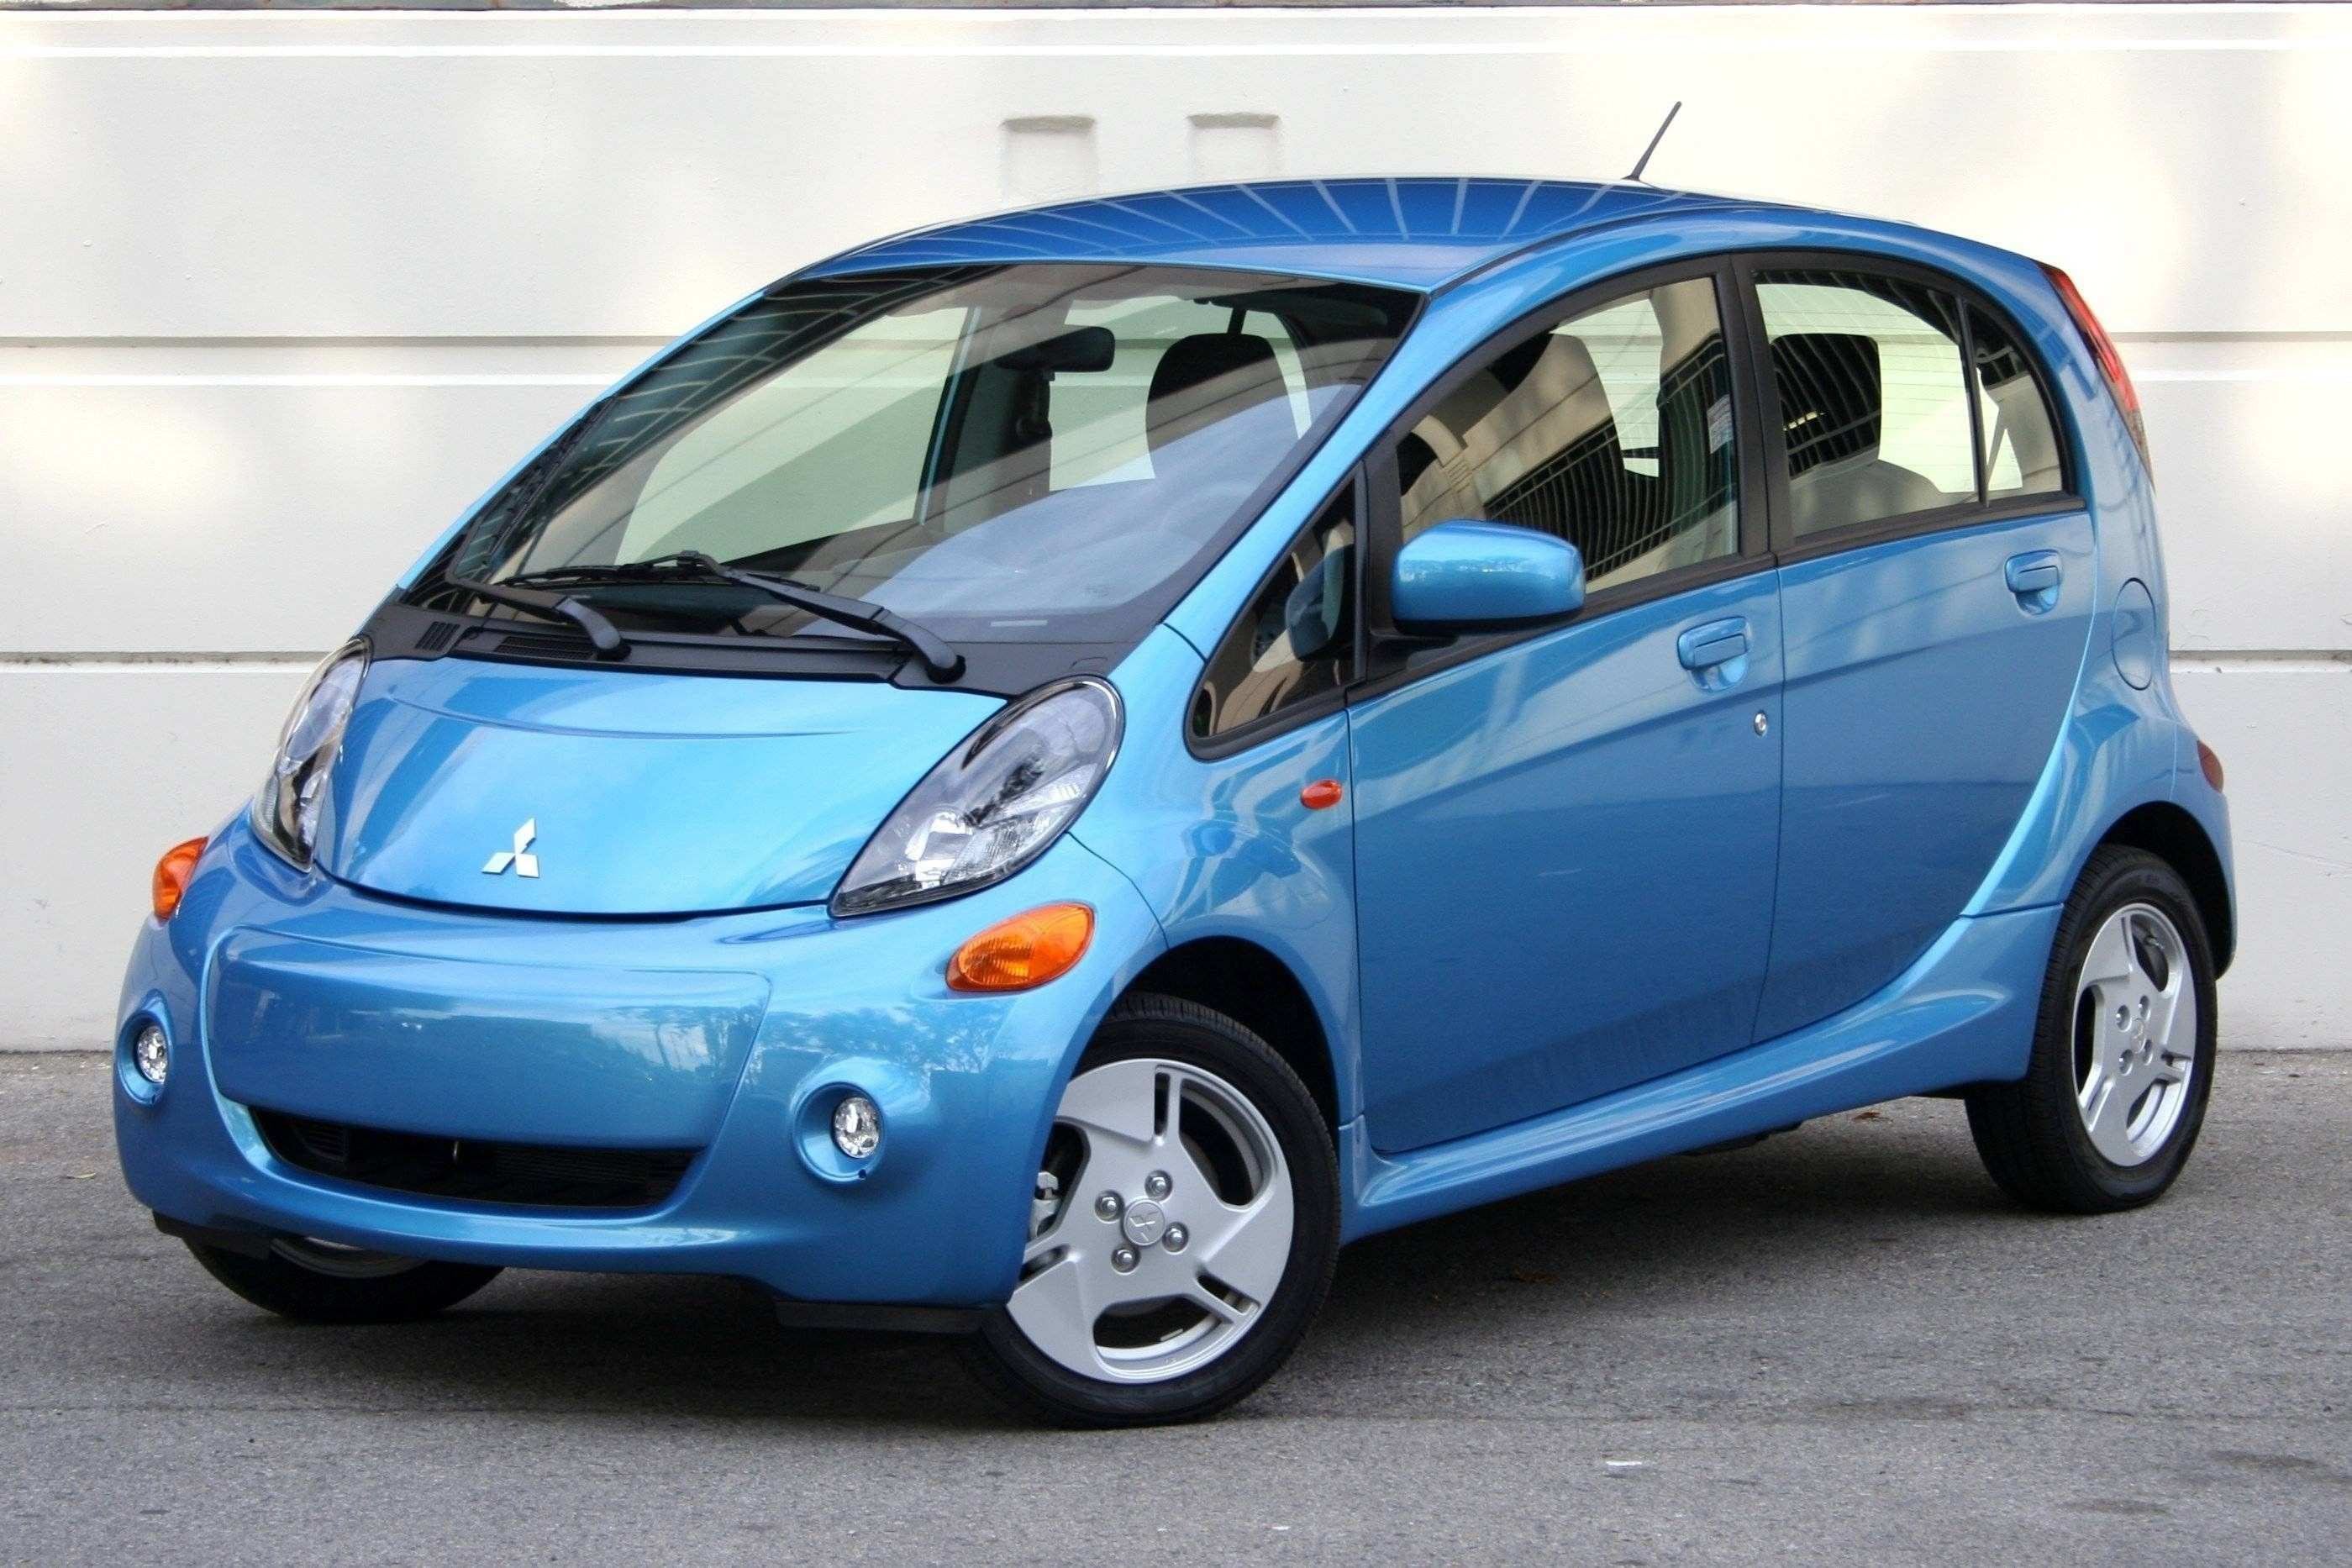 48 New 2019 Mitsubishi I MIEV Price And Review